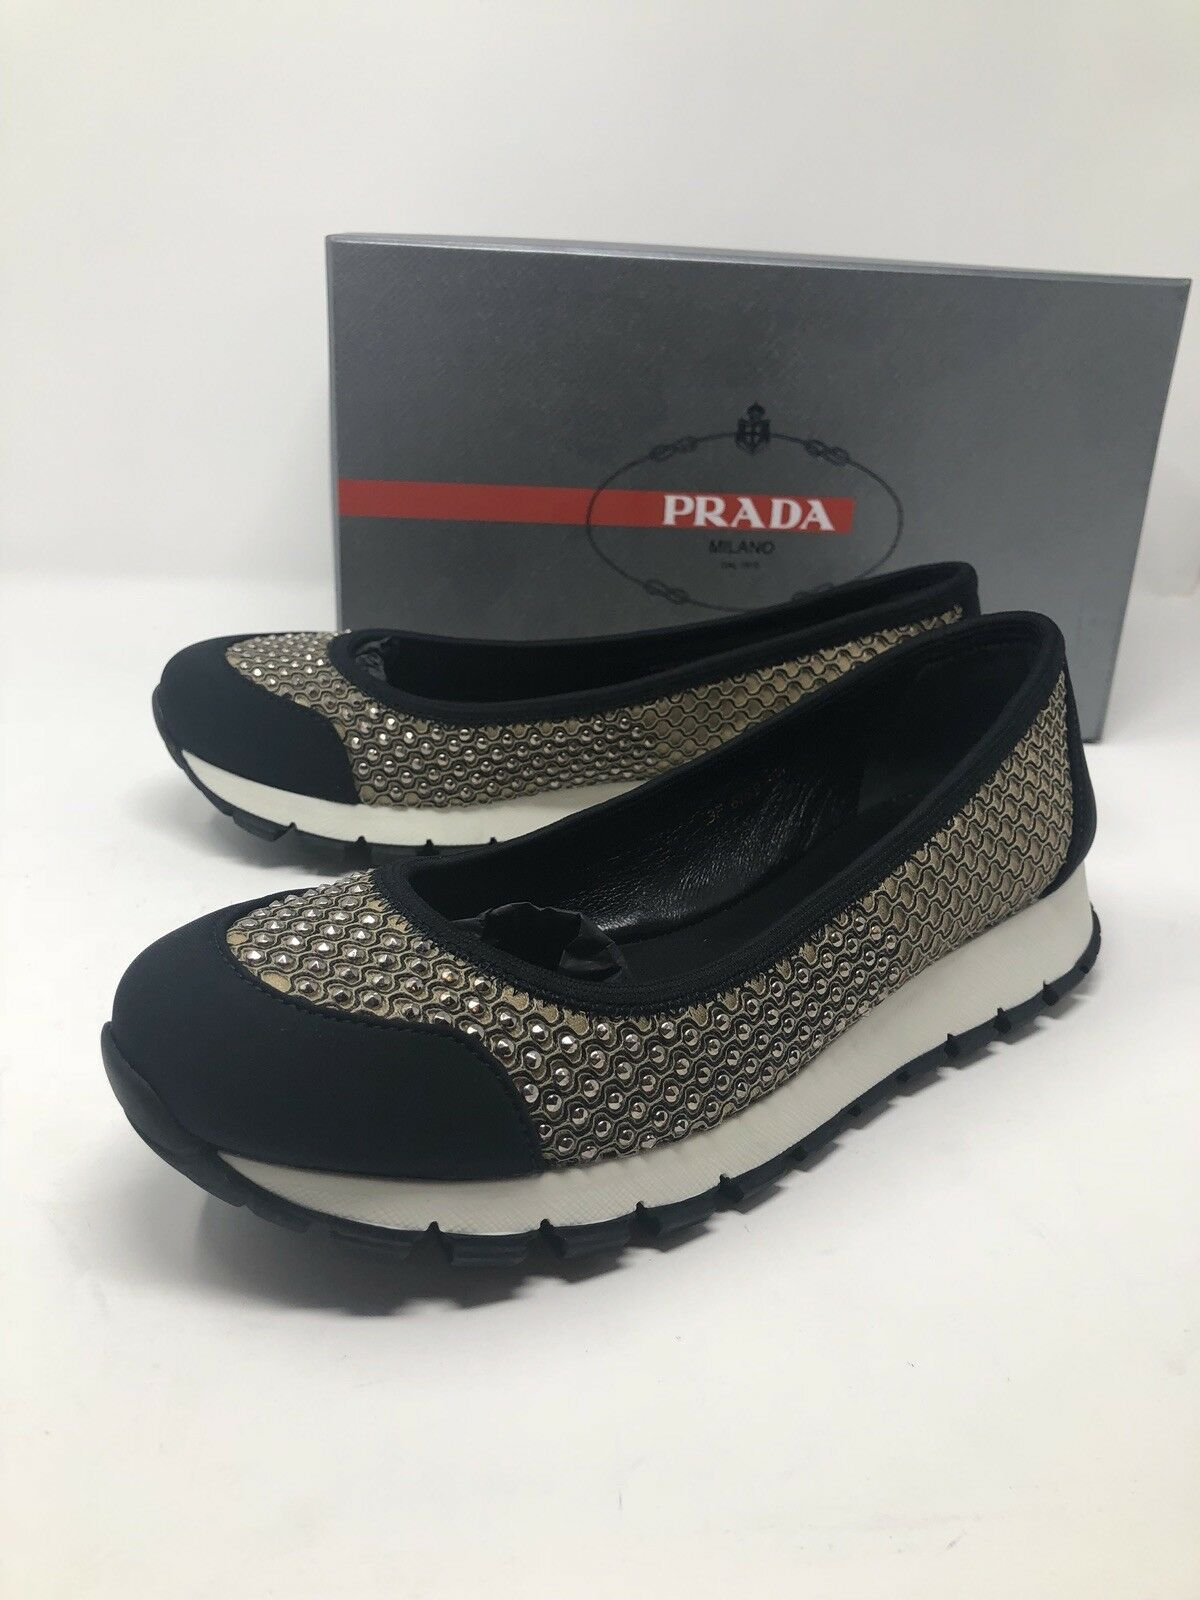 620 New PRADA Womens Beige Black shoes Sneakers Ladies Size 8.5 US 38.5 EU